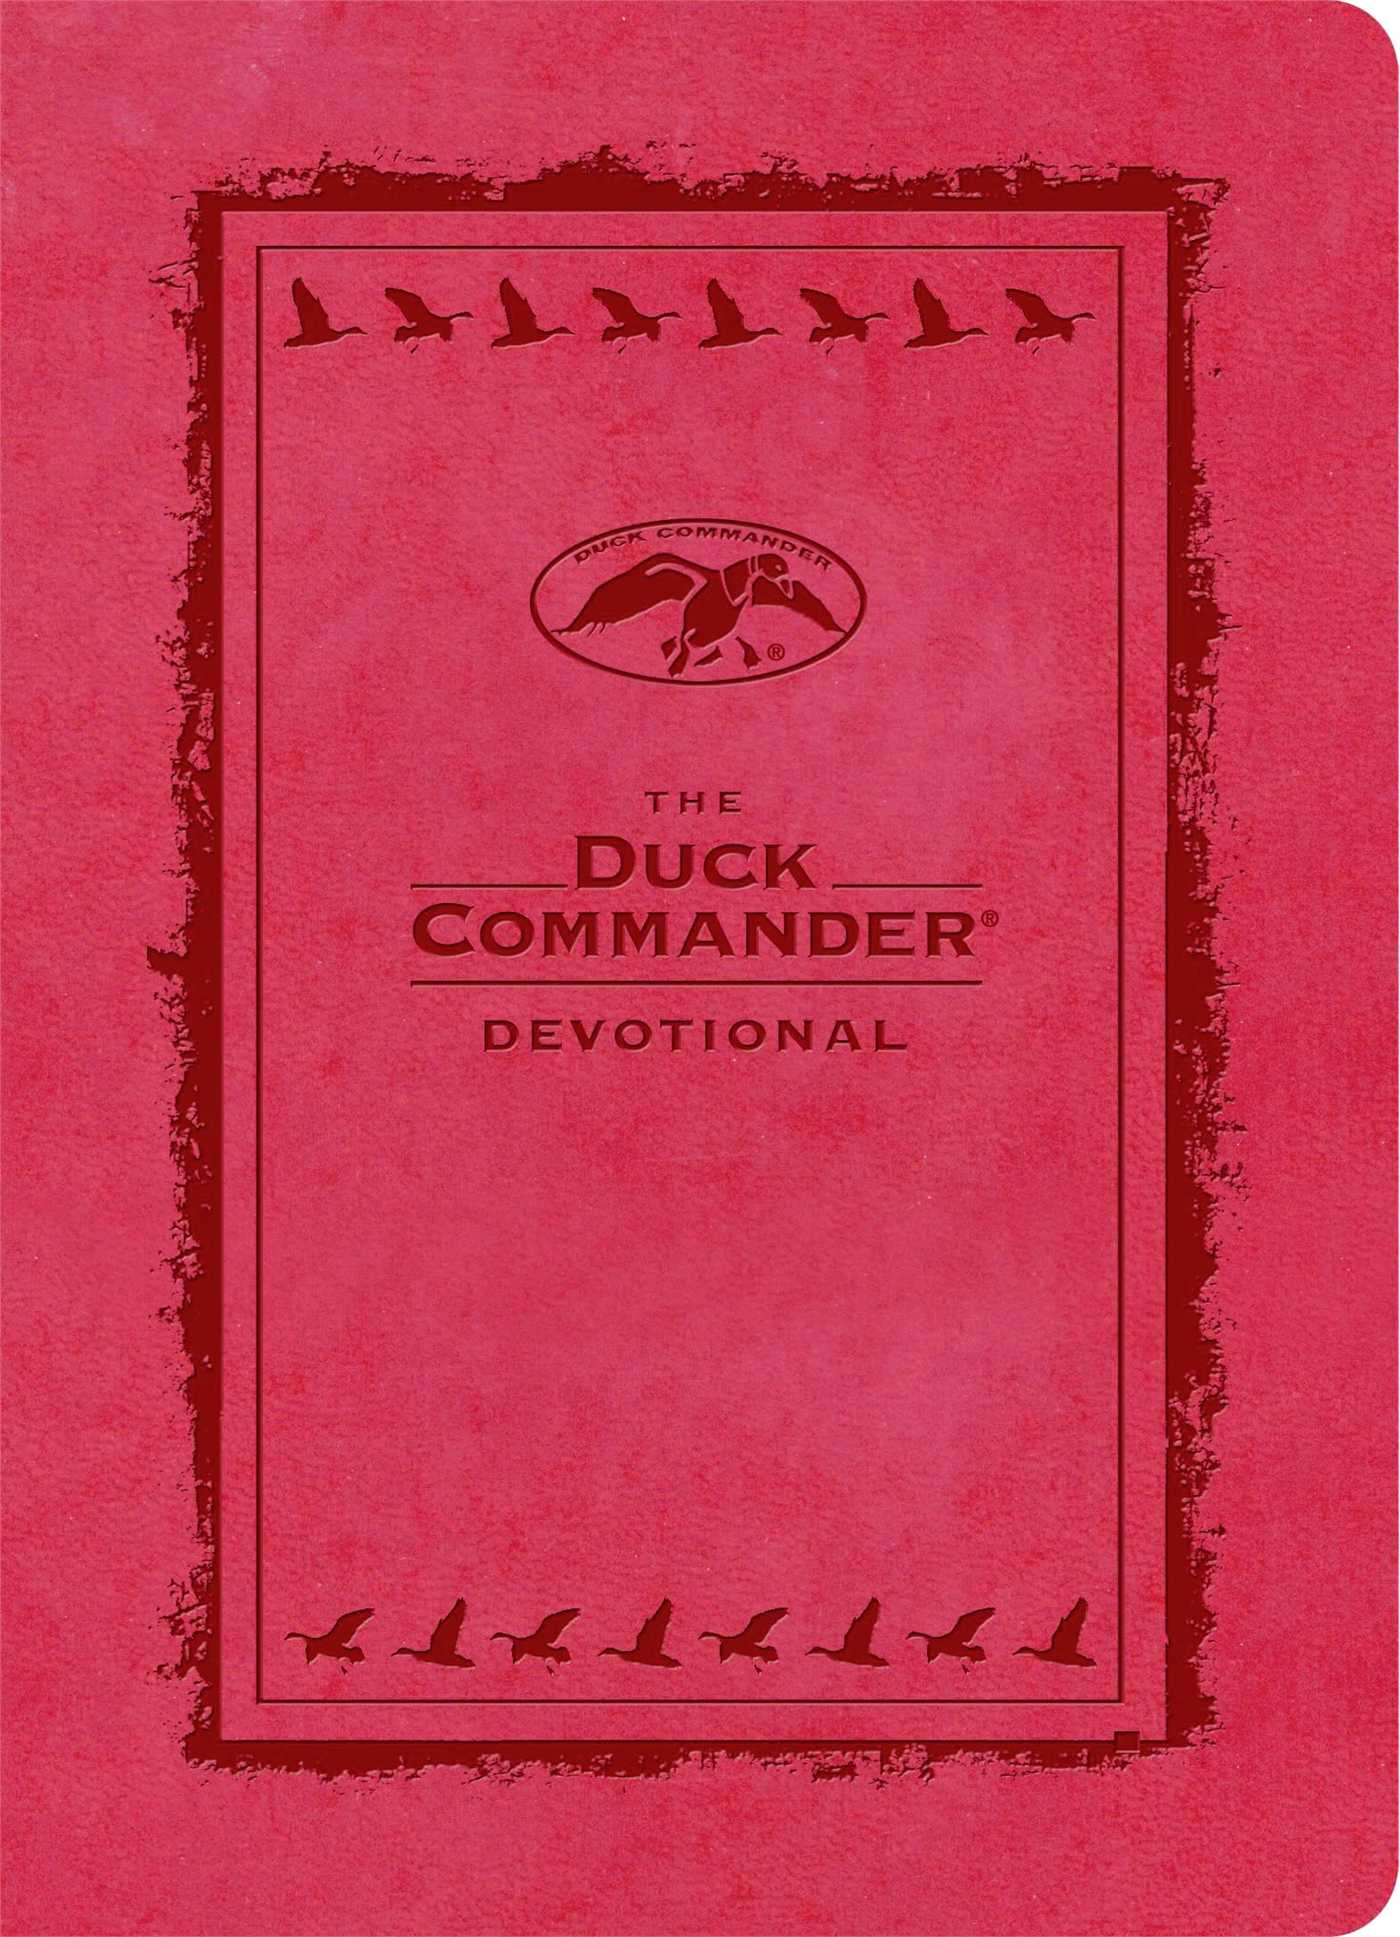 Duck-commander-devotional-pink-leathertouch-9781476762289_hr